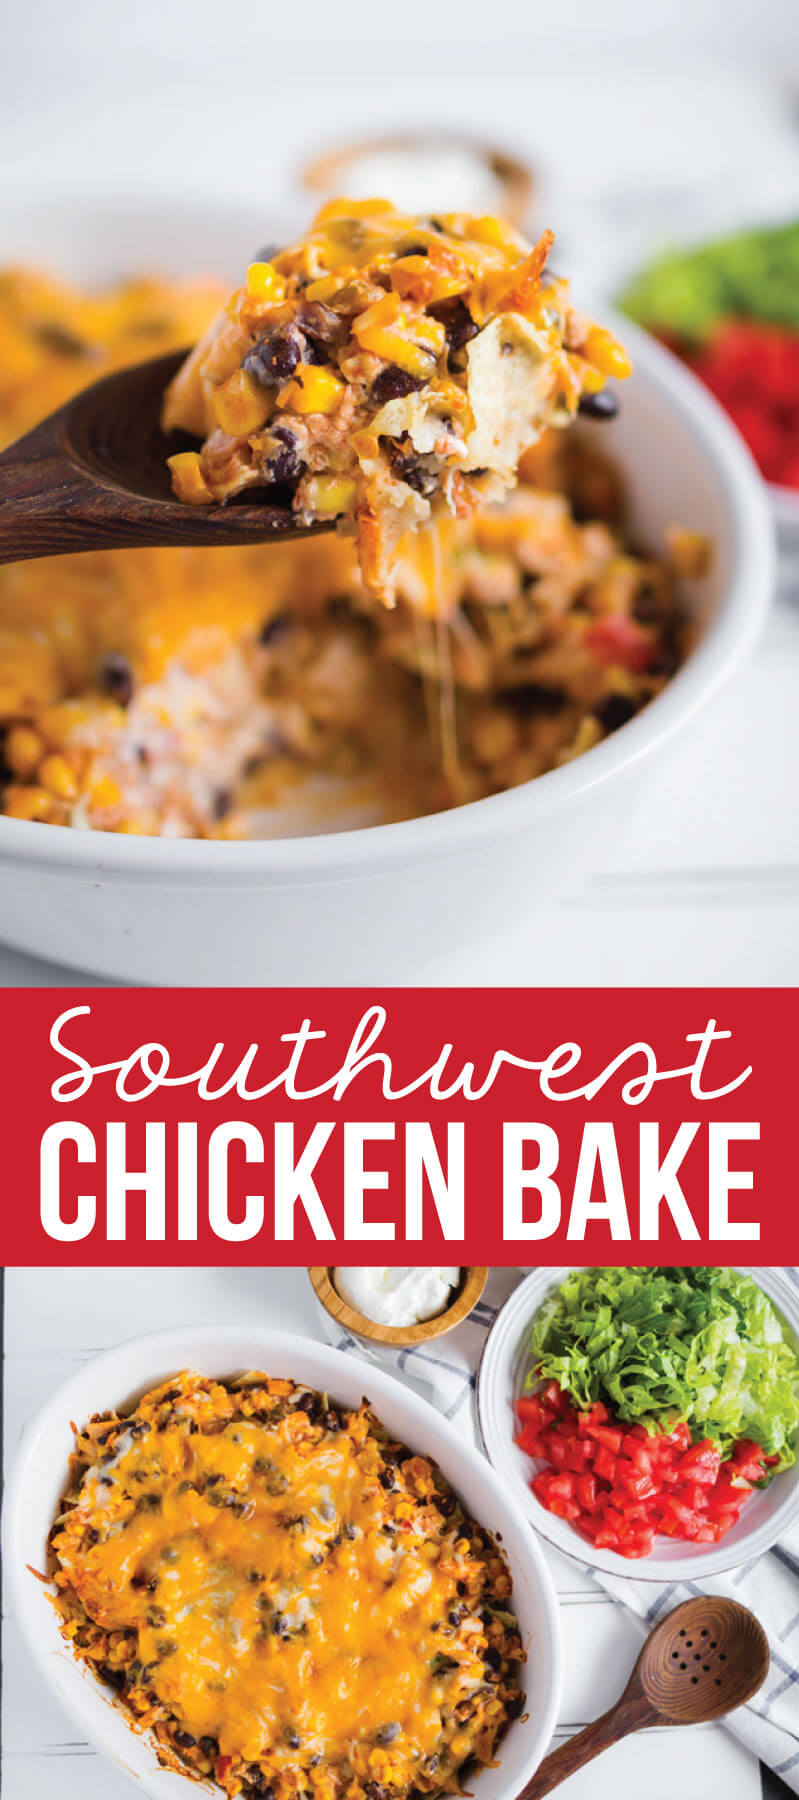 Southwest Chicken Bake- make this yummy main dish and enjoy! from www.thirtyhandmadedays.com